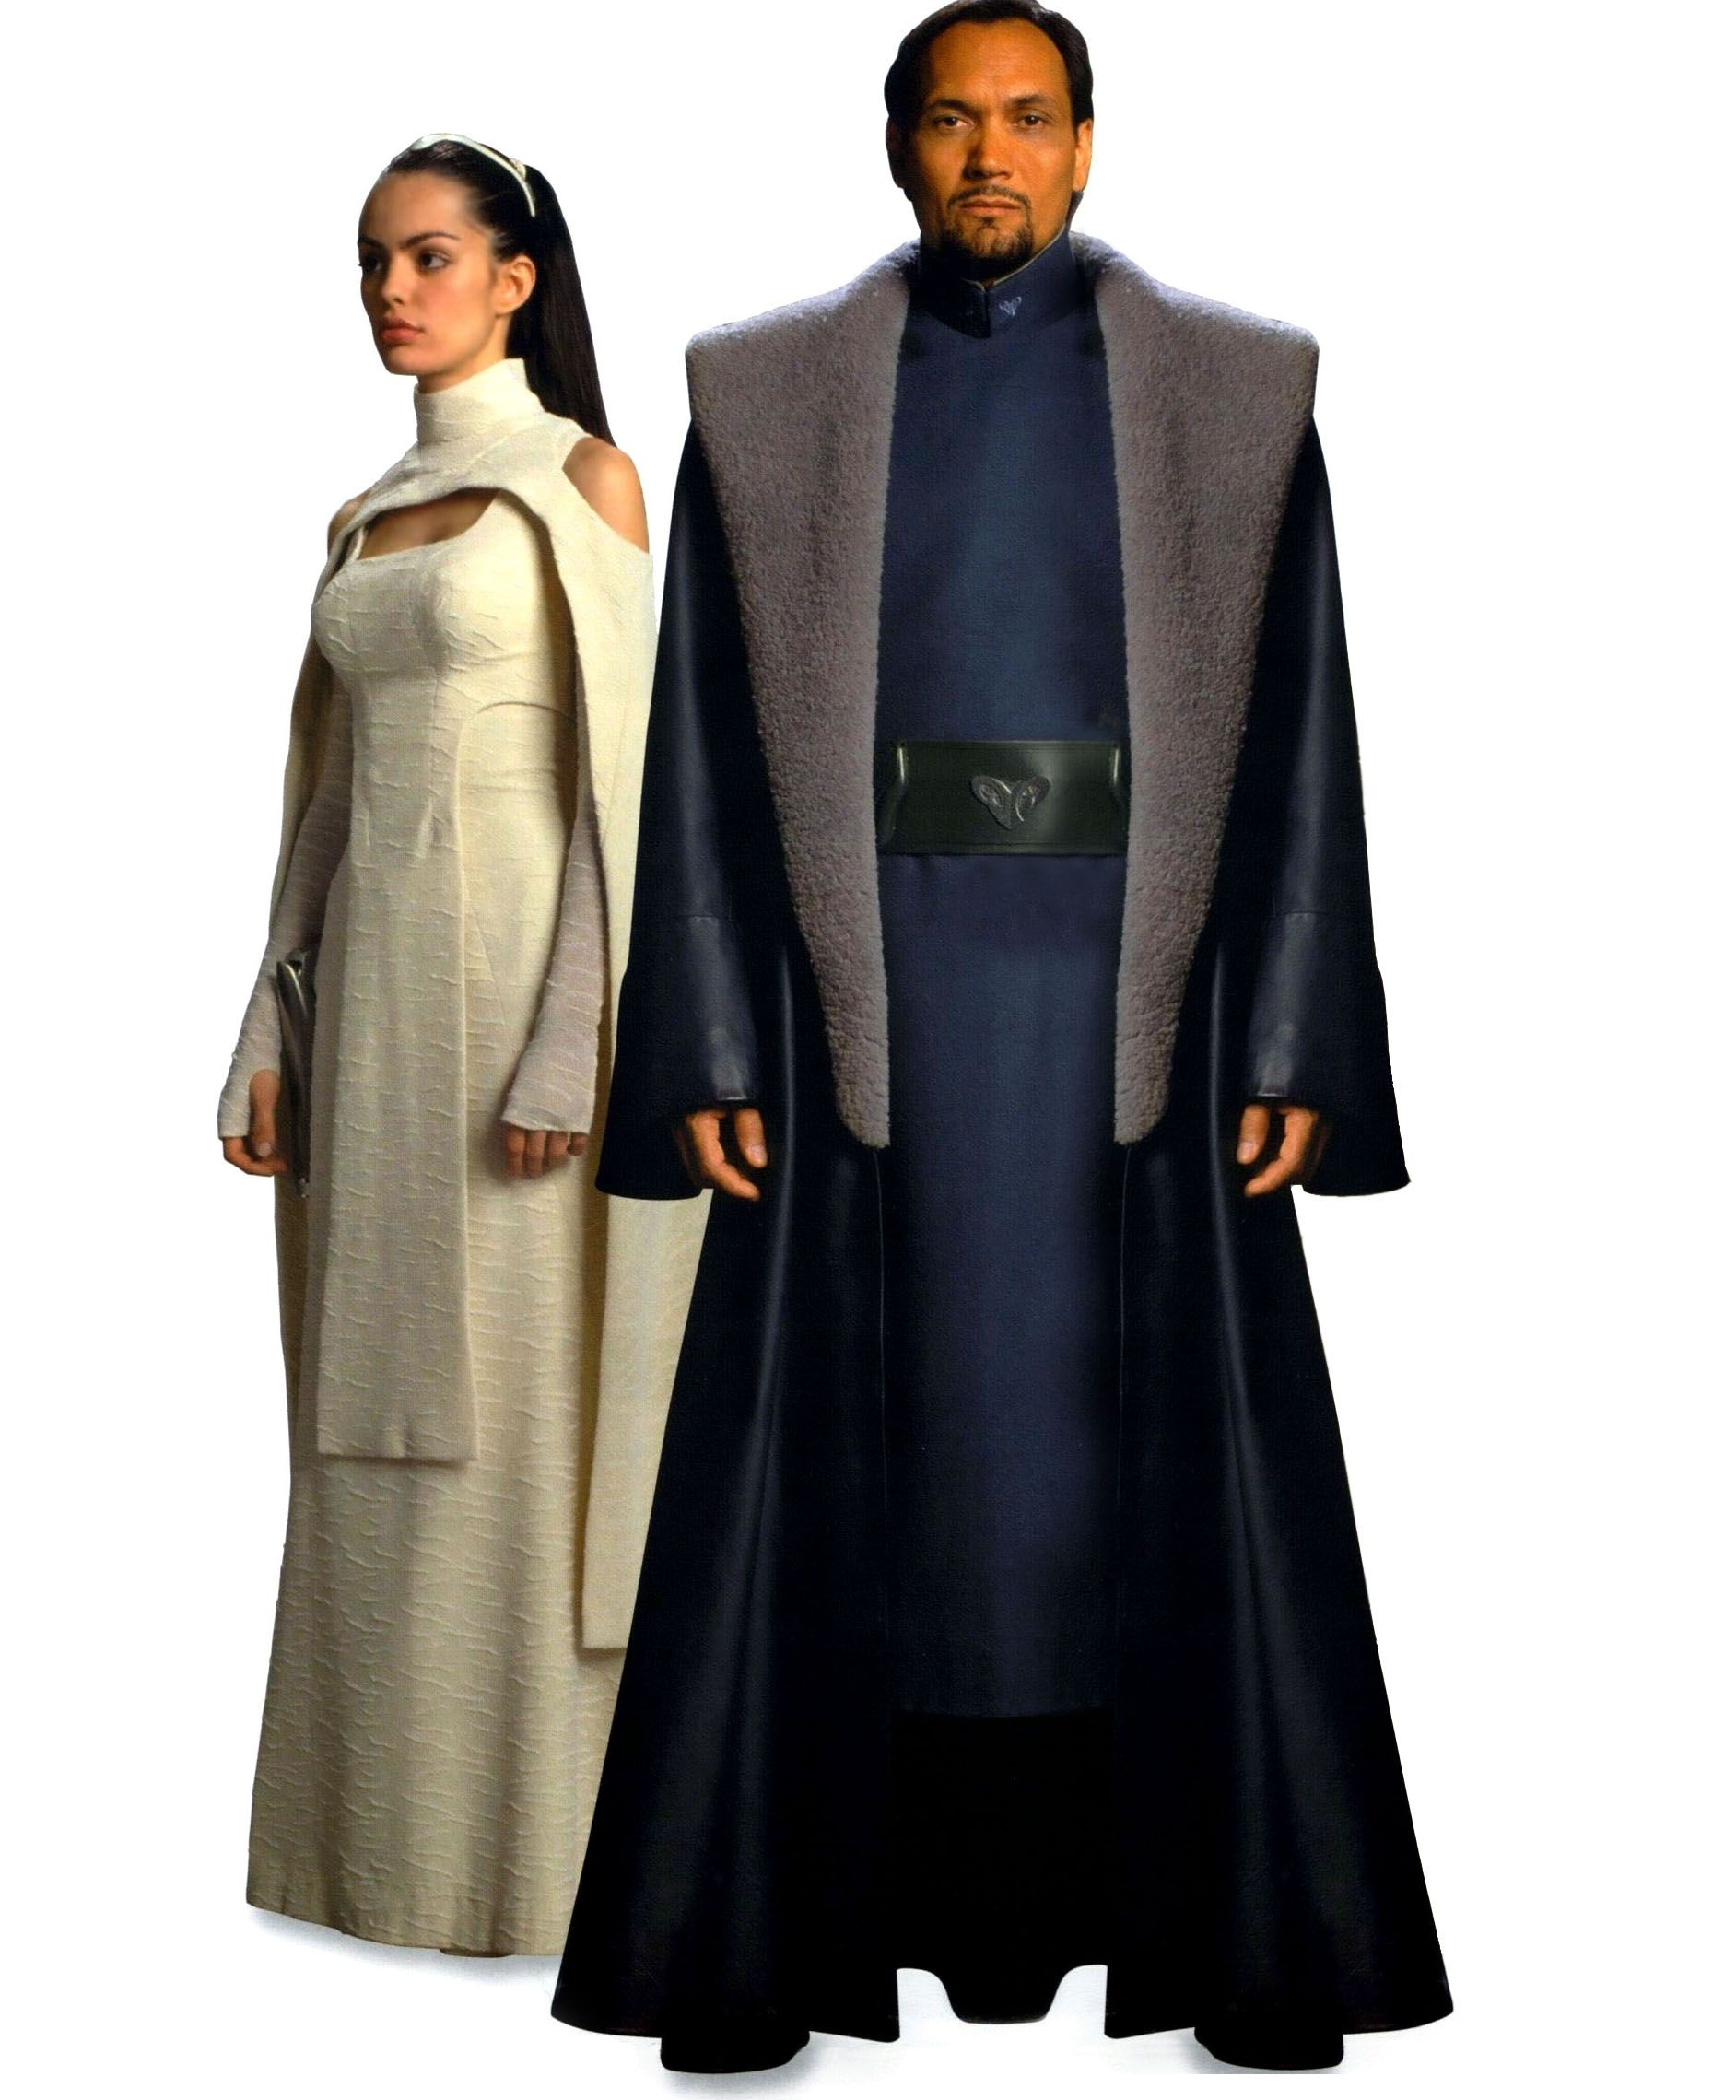 Bail Organa and Aide Revenge of the Sith   Star Wars ...